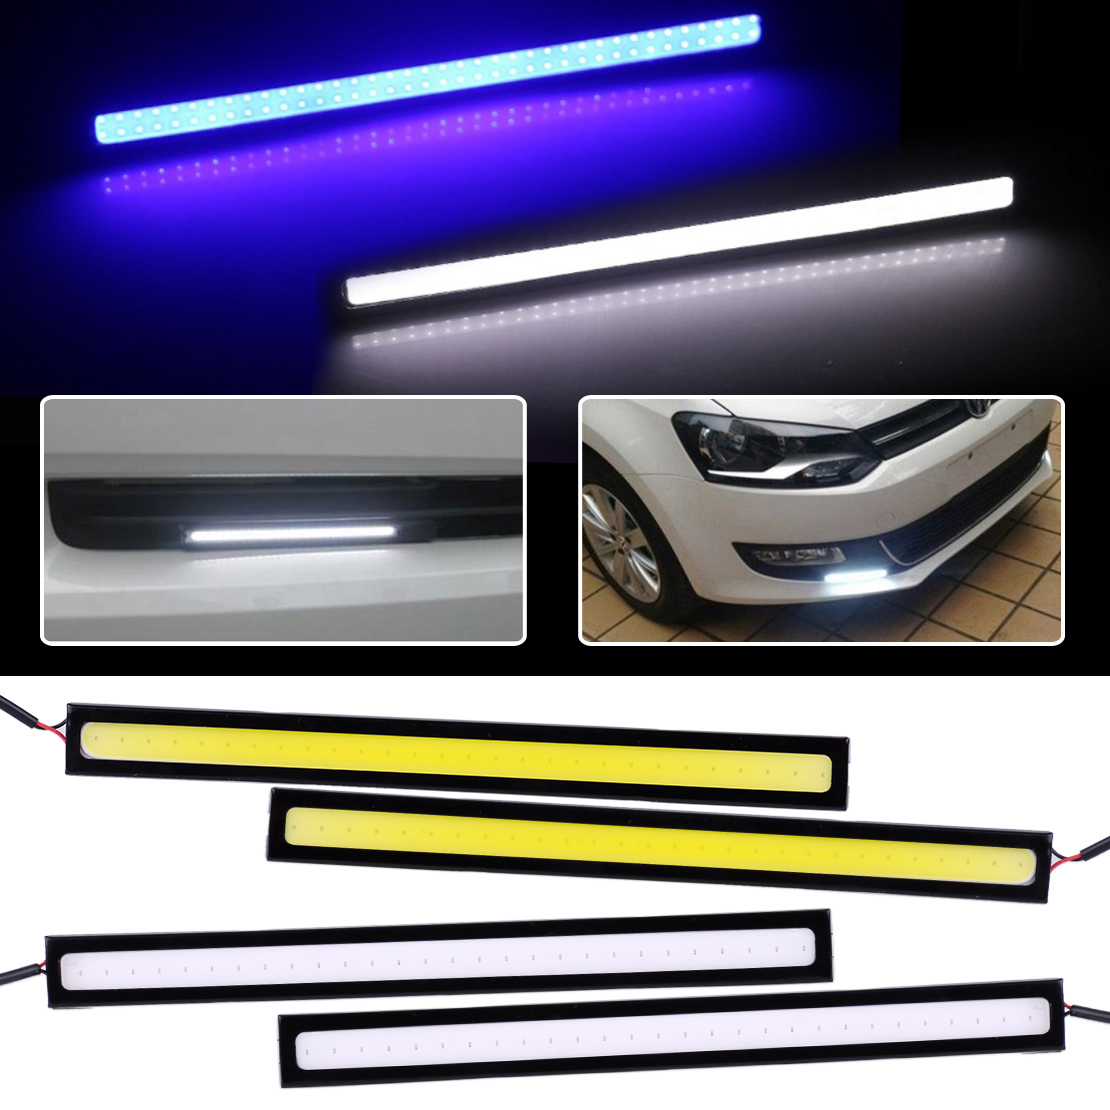 beler New 2pcs 12V Super Bright LED Waterproof Daytime Running Lights Auto Car Styling Decoration DRL COB Fog Driving Lamp auto super bright 3w white eagle eye daytime running fog light lamp bulbs 12v lights car light auto car styling oc 25